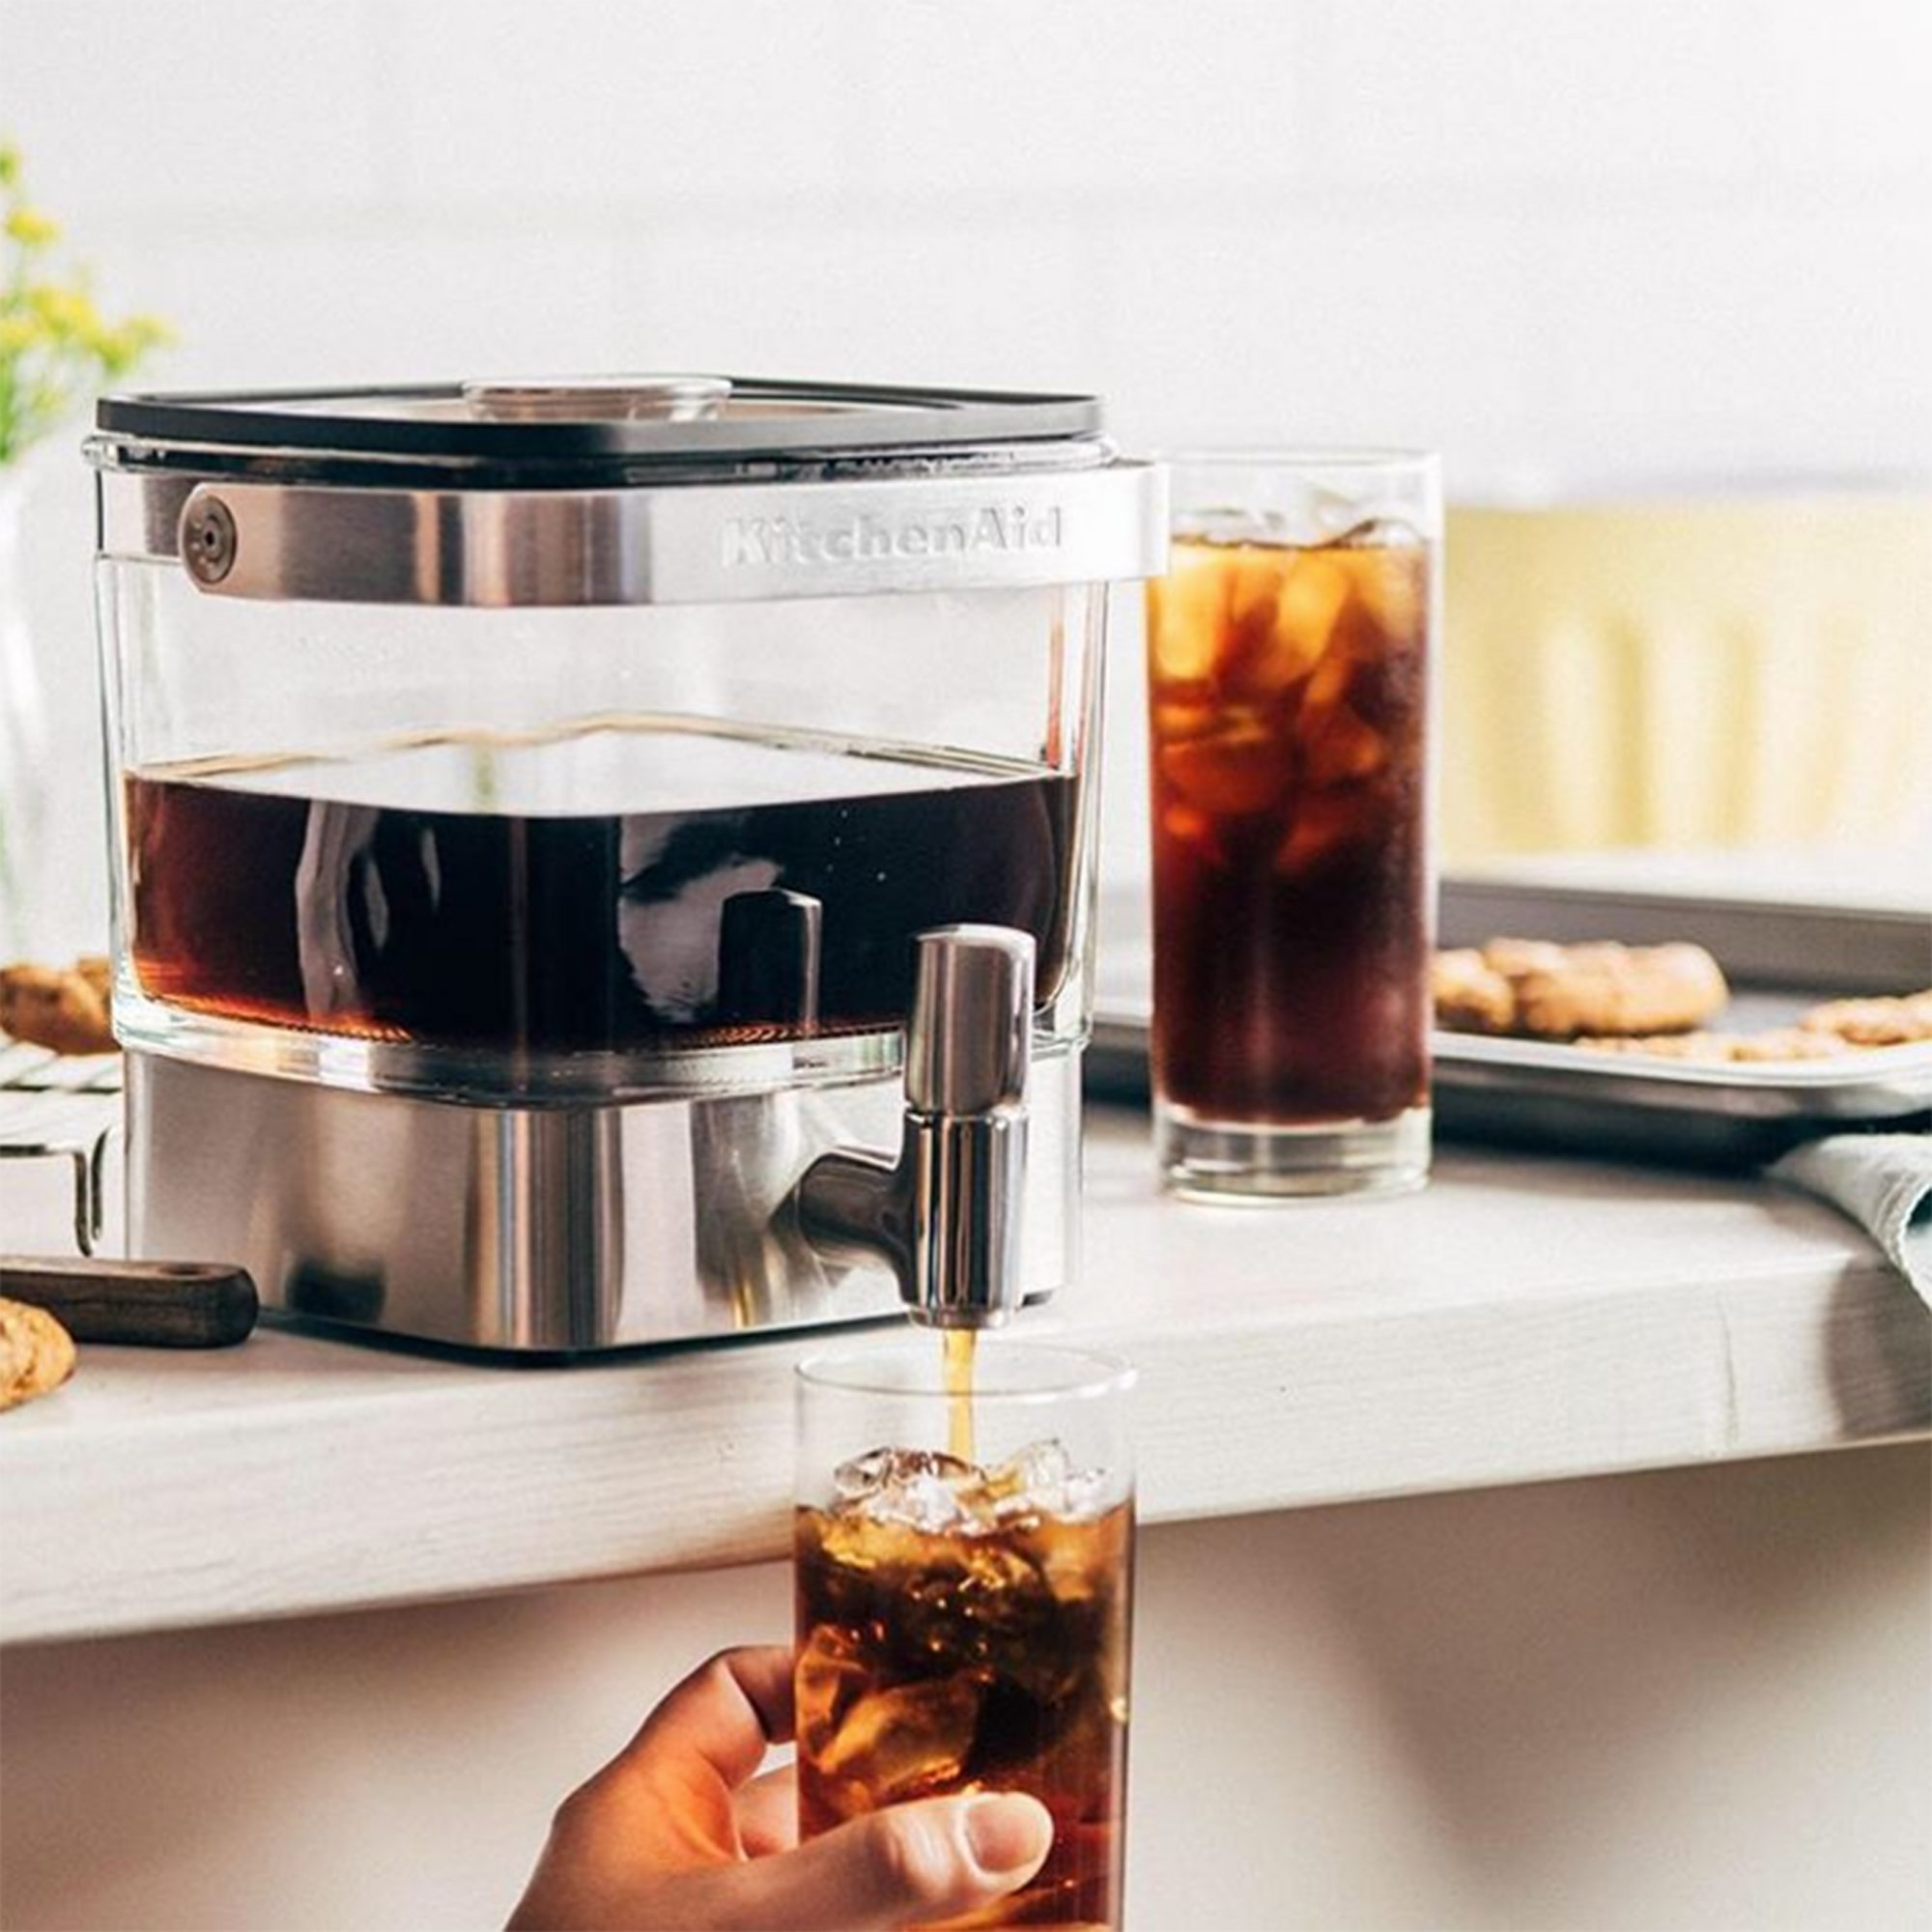 Amazon Is Having a Secret Sale on This Popular KitchenAid Cold Brew Coffee Maker — but You Have to Act Fast